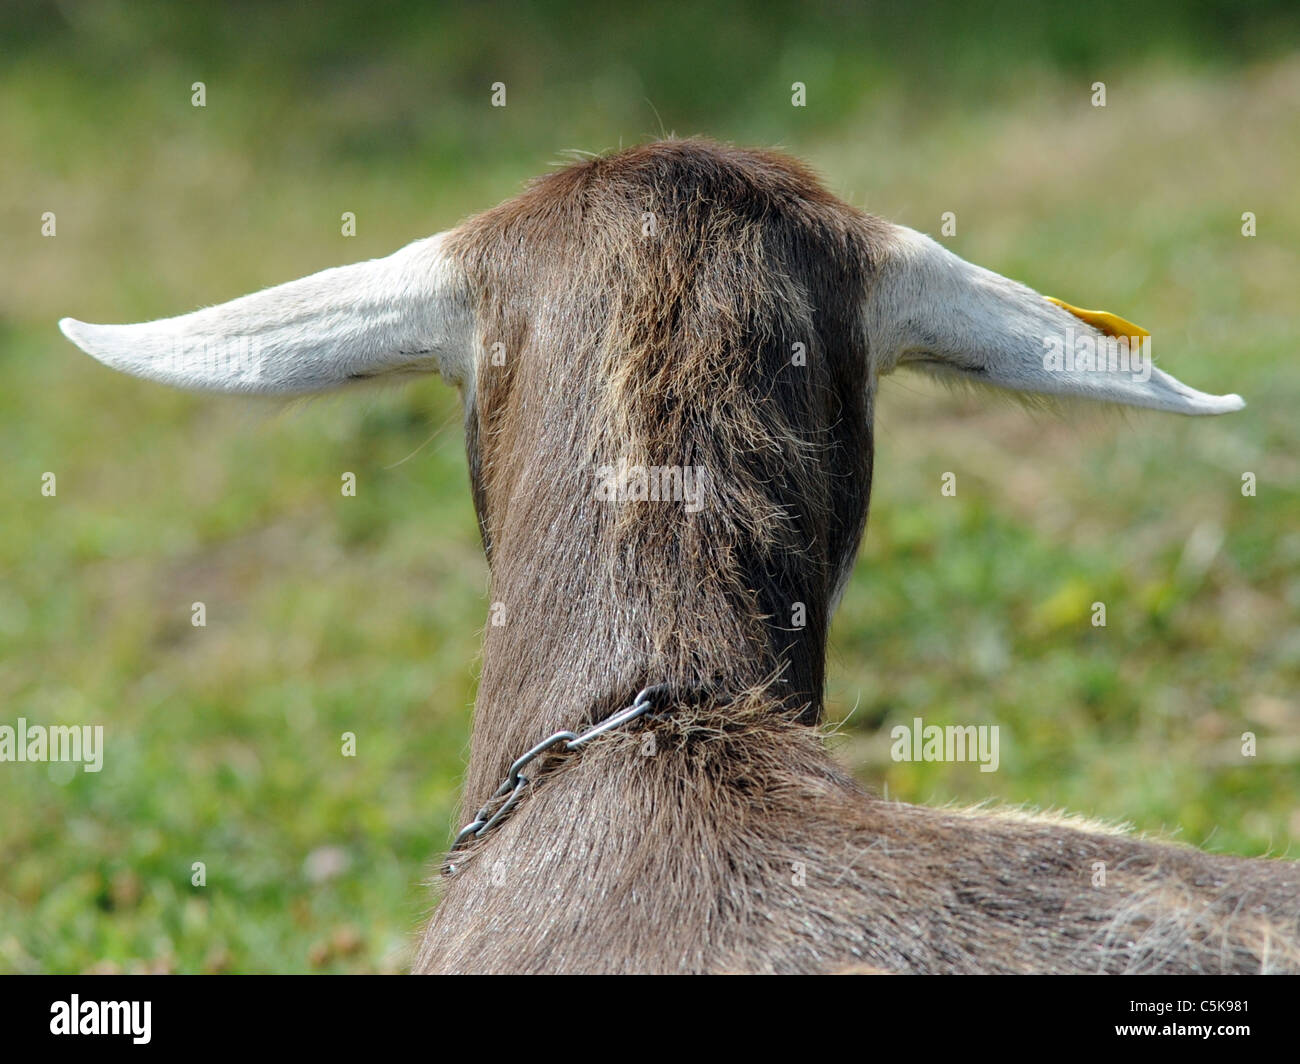 The back of a British Toggenburg goats' head. - Stock Image